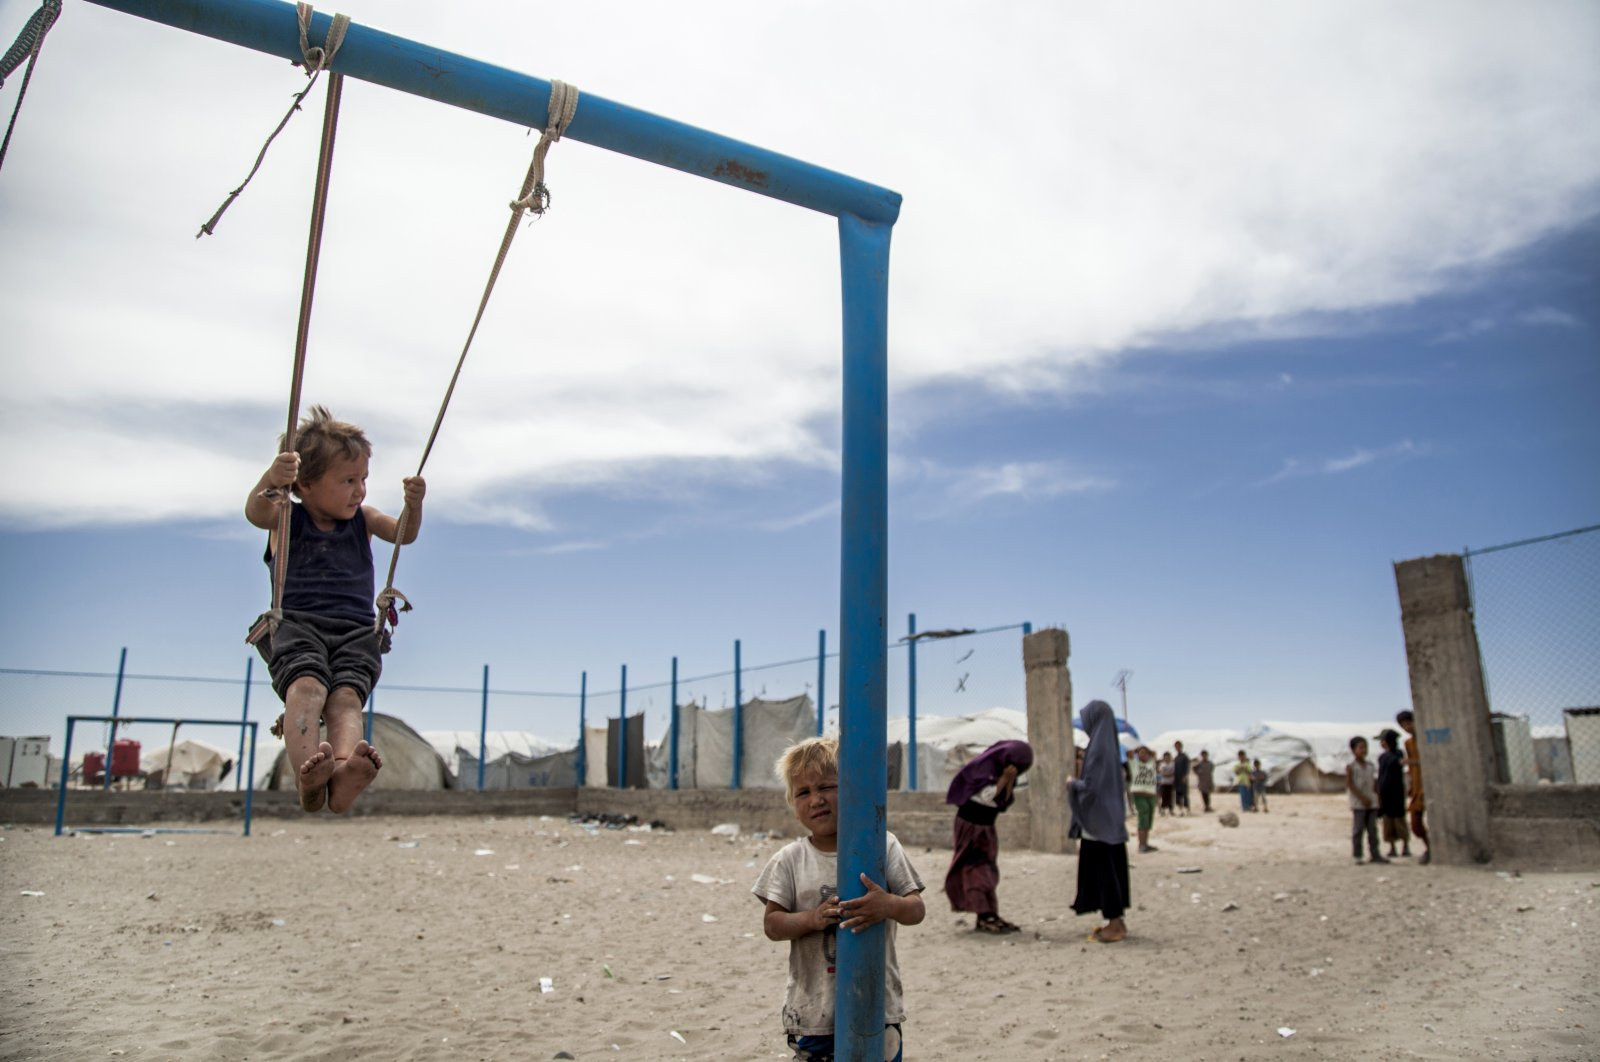 Children play at the al-Hol camp, which houses some 70,000 refugees, including families and supporters of the Daesh terrorist group, many of them foreign nationals, in Hassakeh province, Syria, May 1, 2021. (AP Photo)